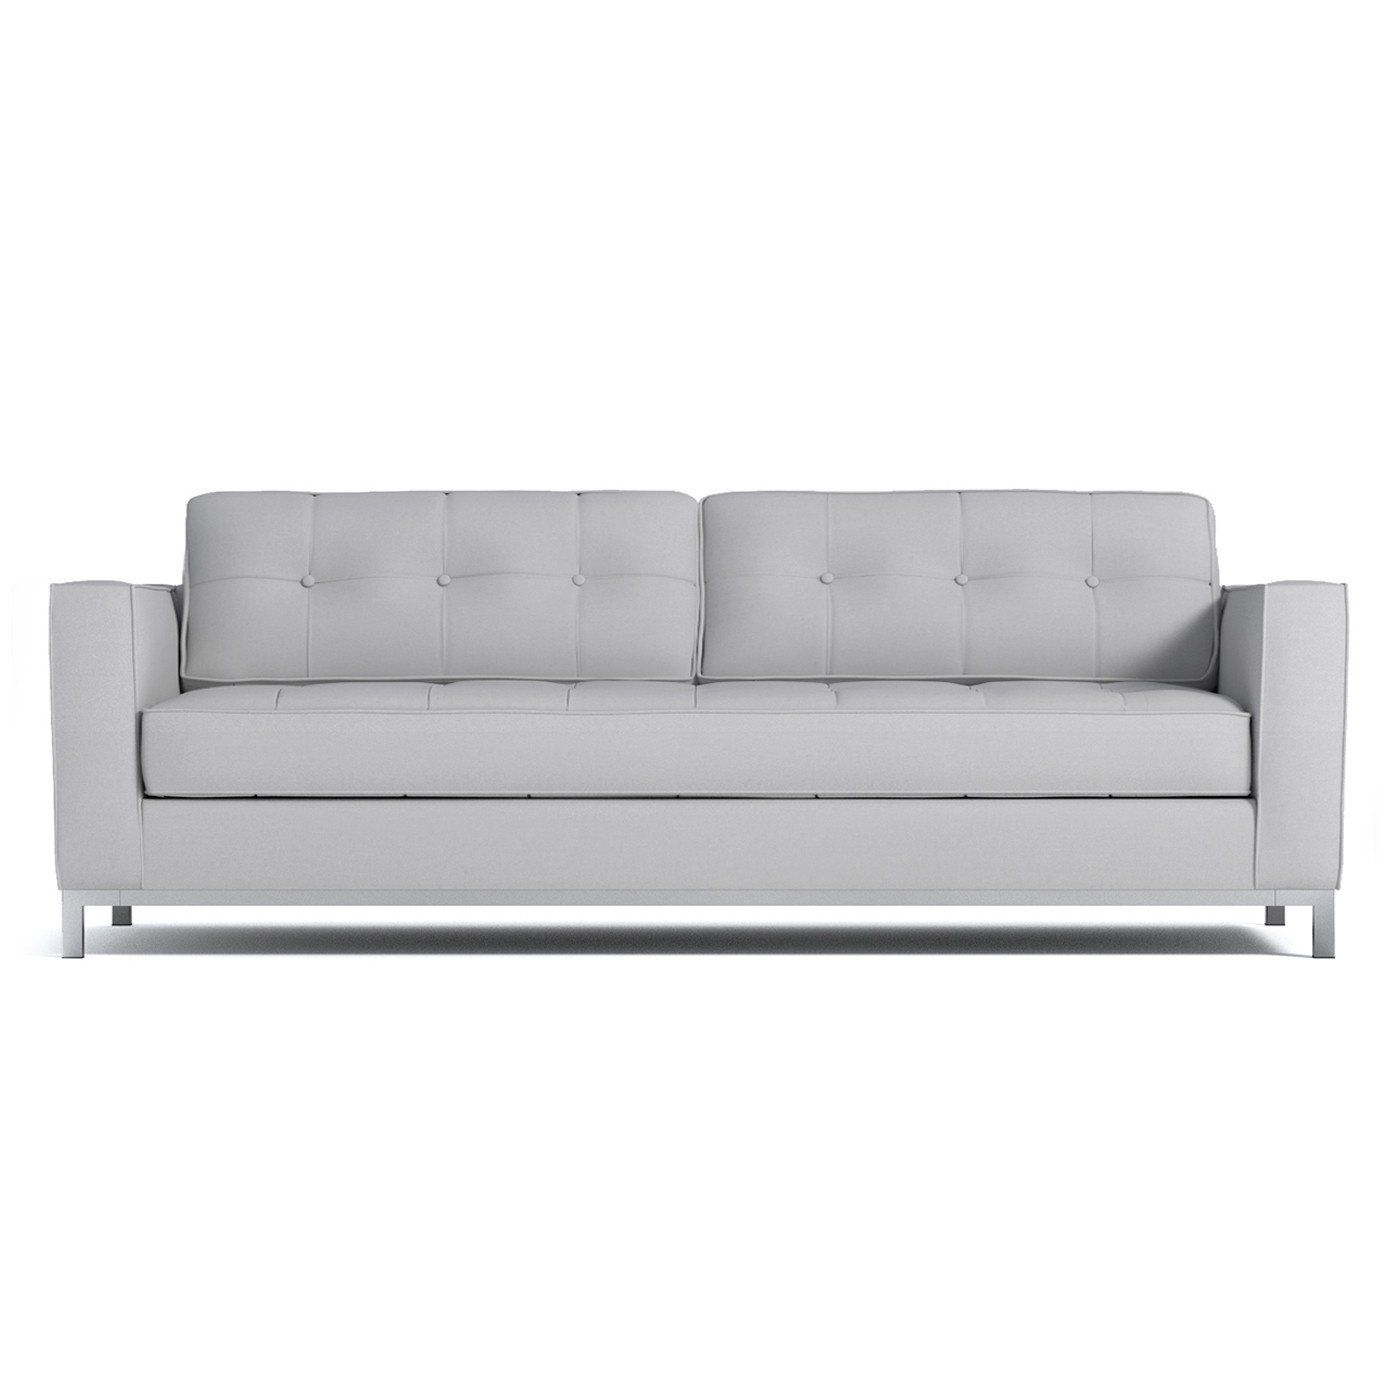 Fillmore Queen Size Sleeper Sofa Queen Size Sofa Bed Apt2b Apartment Size Sofa Queen Size Sleeper Sofa Modern Sleeper Sofa